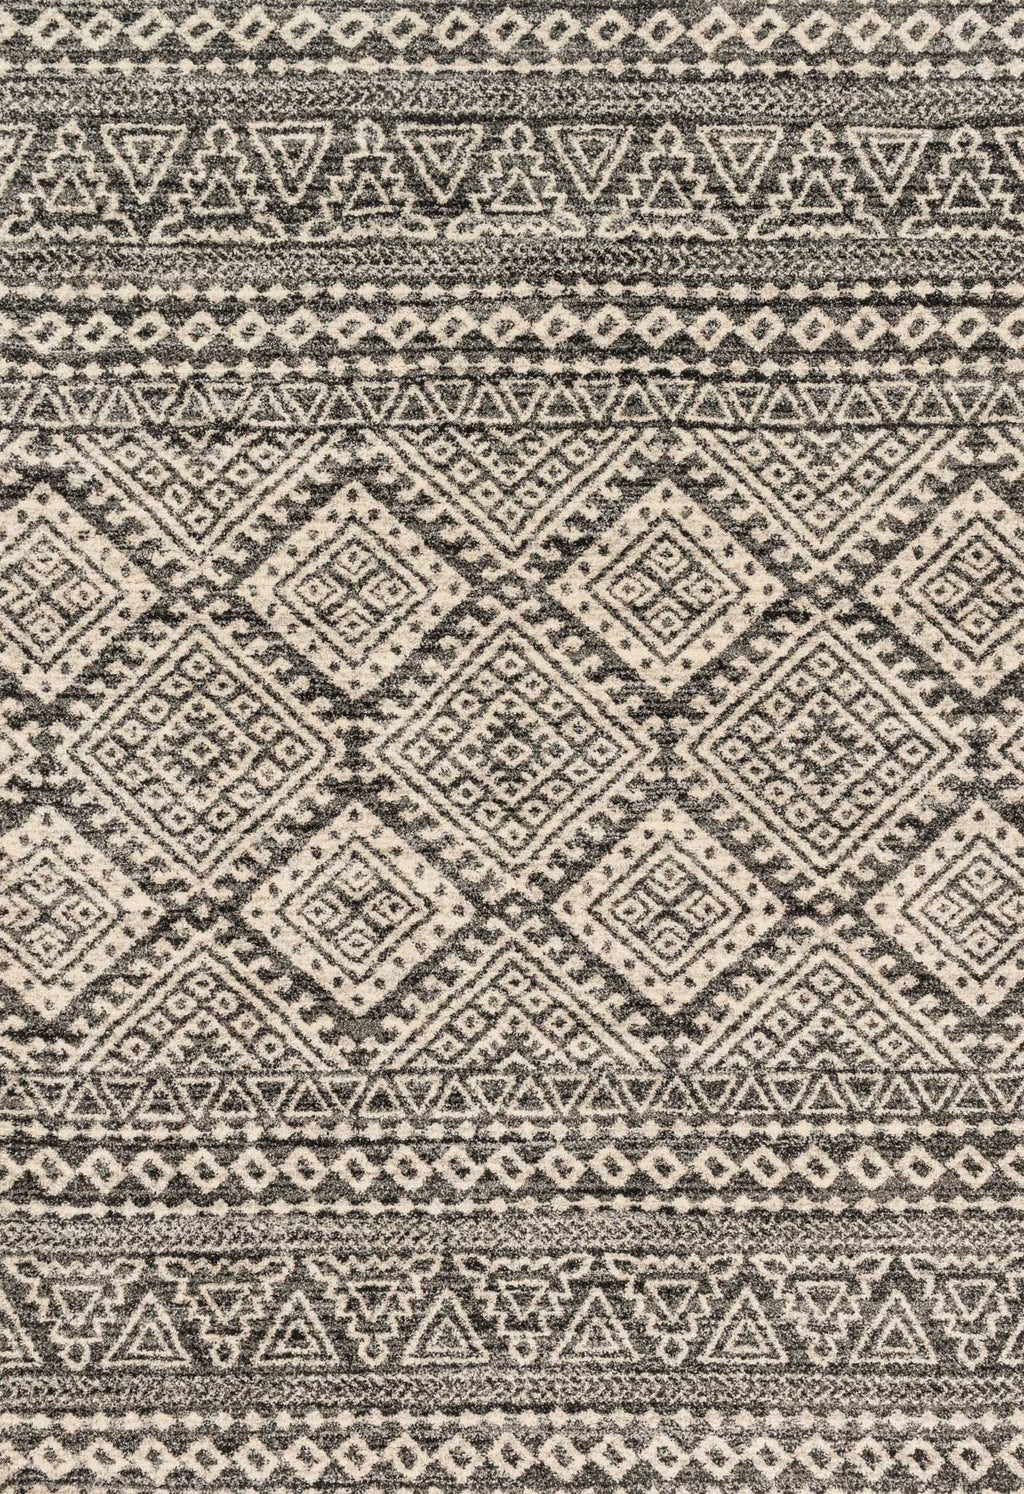 EMORY Collection Rug  in  GRAPHITE / IVORY Gray Runner Power-Loomed Polypropylene